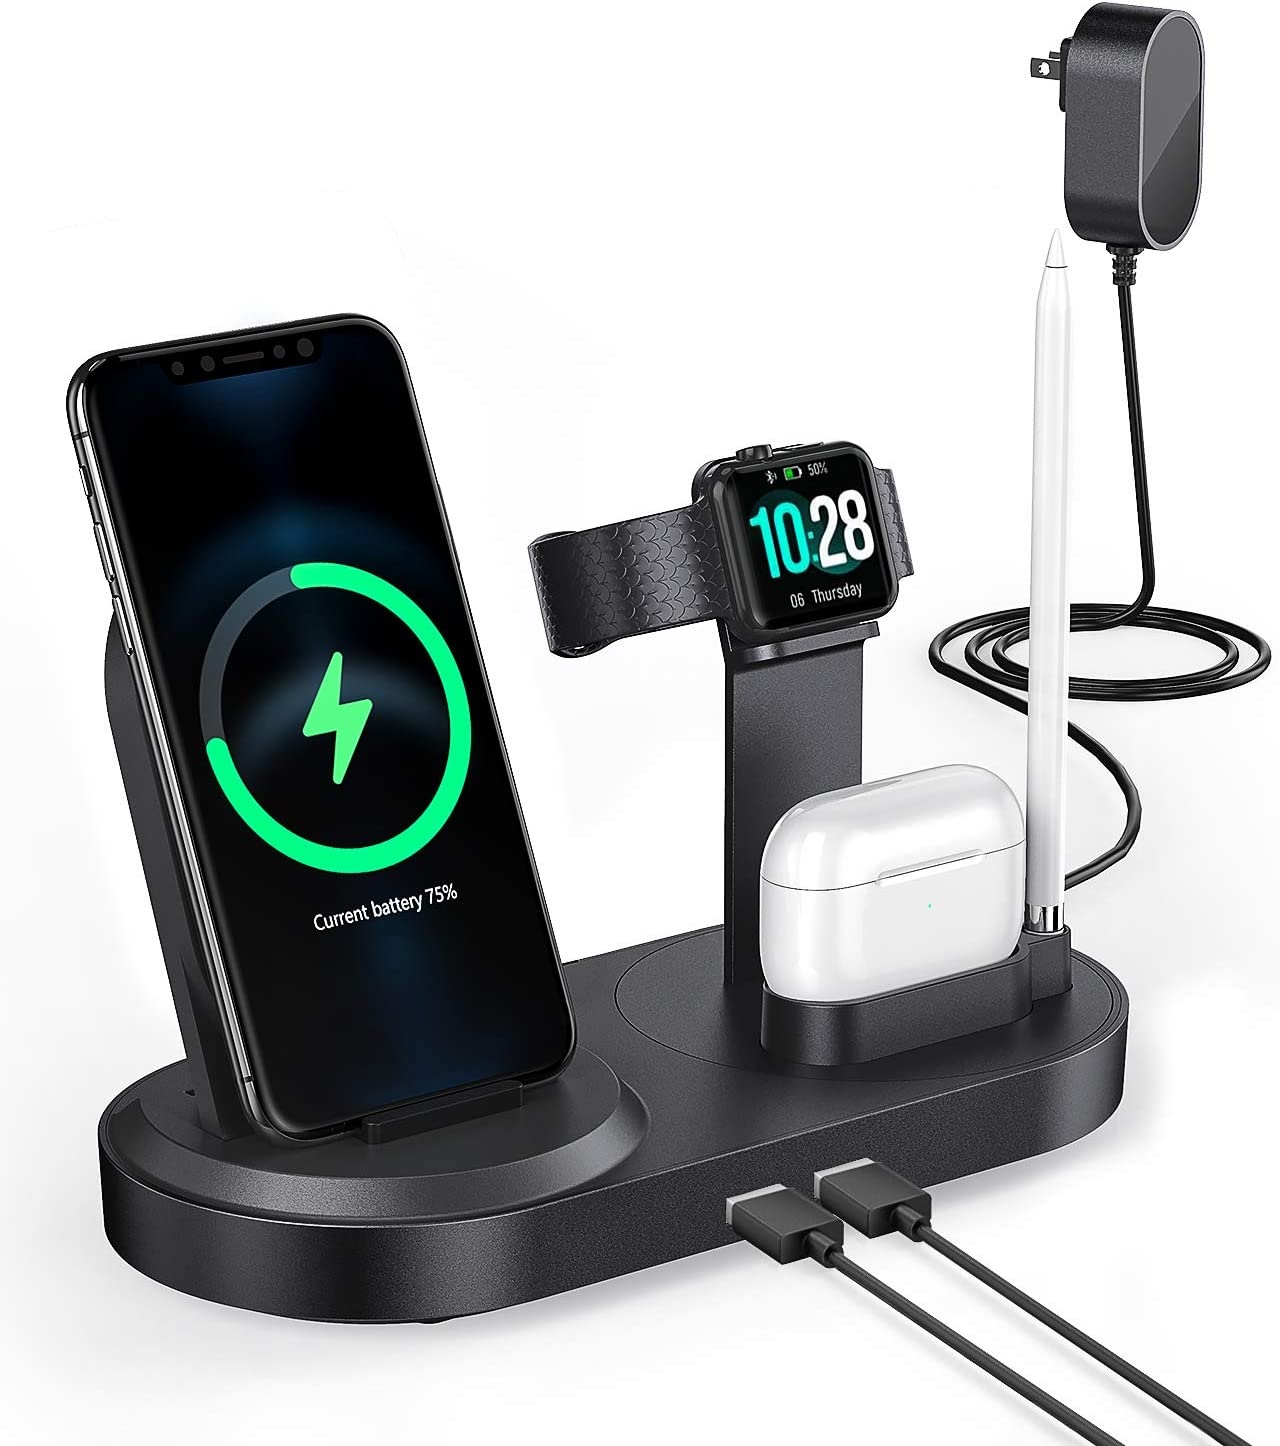 Wireless Charging Station - seenda Fast Charging Dock Stand with 2 USB Ports for Apple Watch, AirPods, Cell Phones, Wireless Charger Compatible with iPhone 11/11pro/Xr/Xs/X/Max/8/8 Plus/Samsung